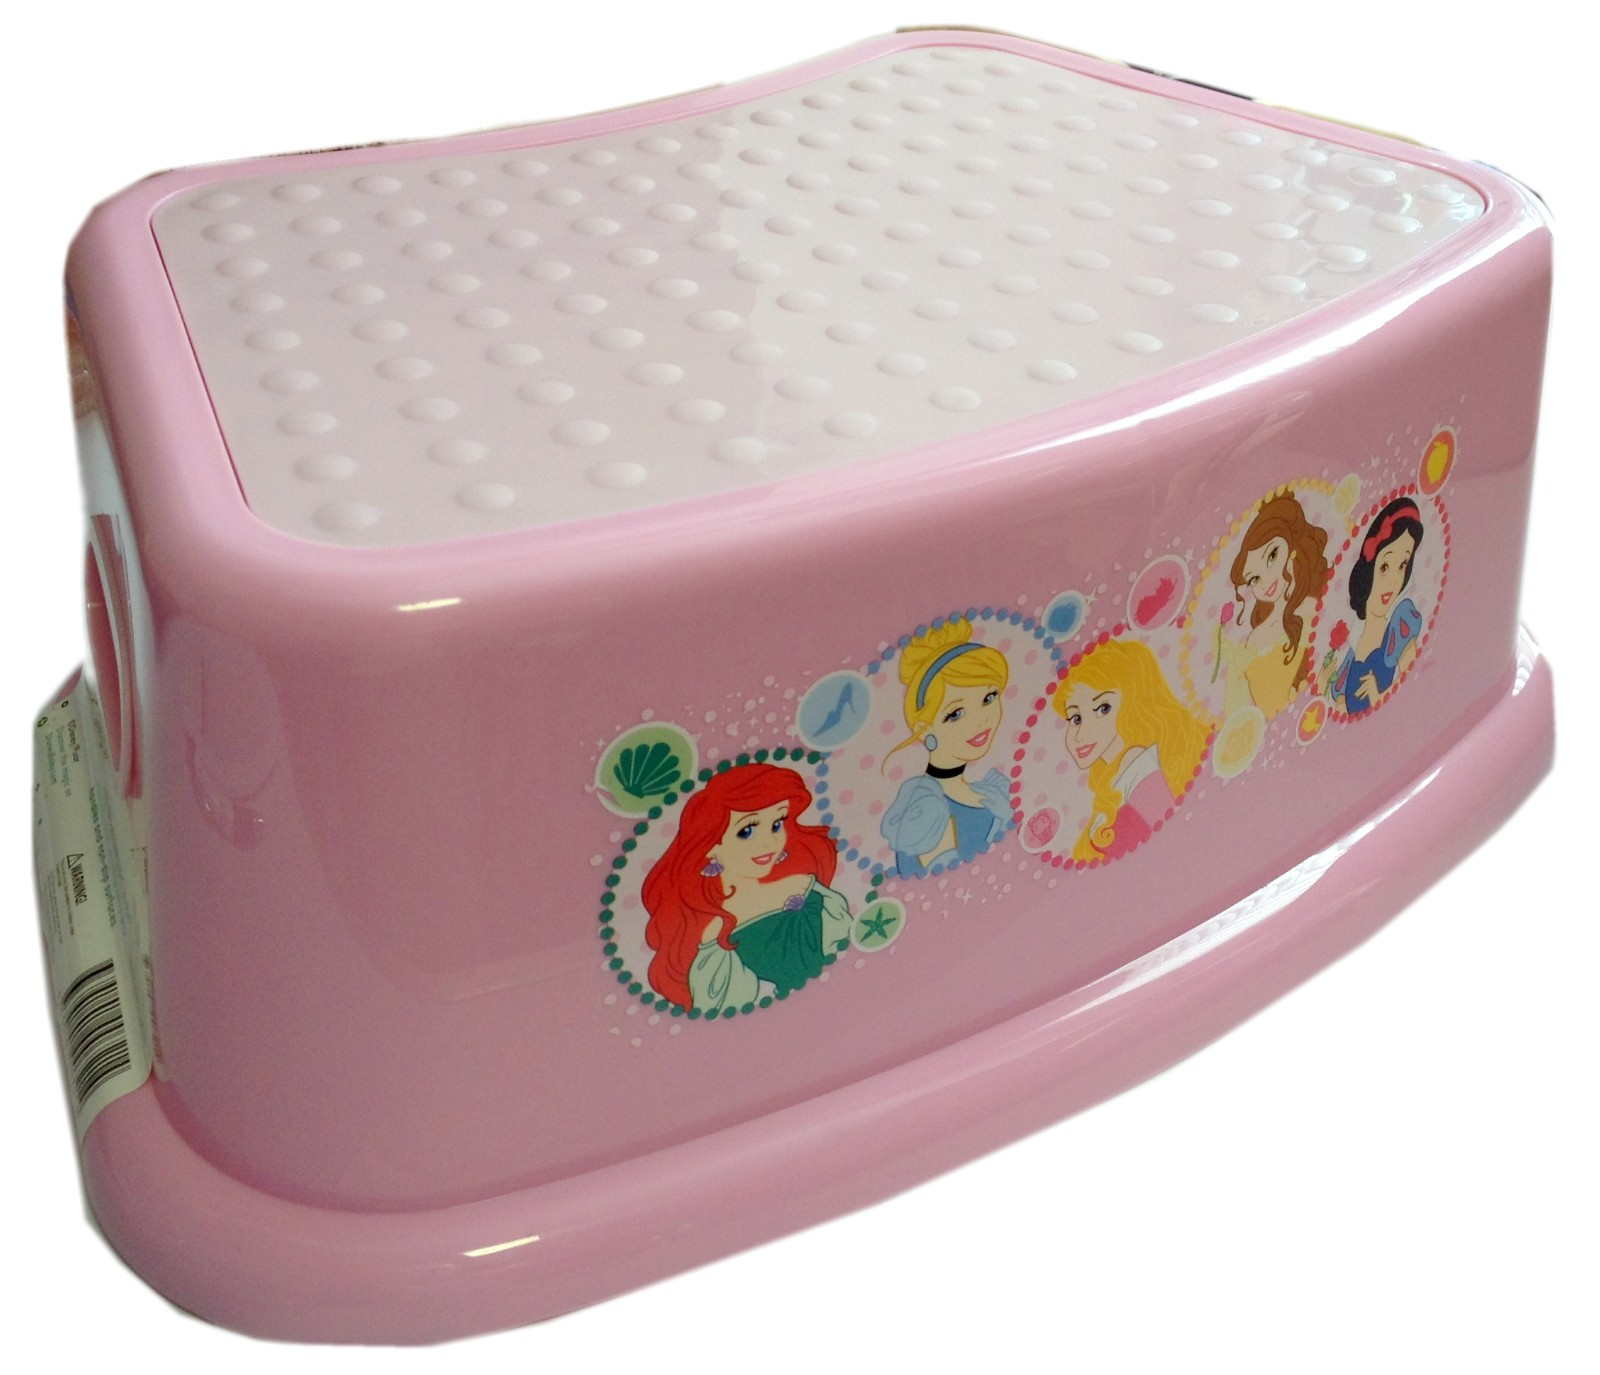 Disney Princess Pink Plastic Step Stool